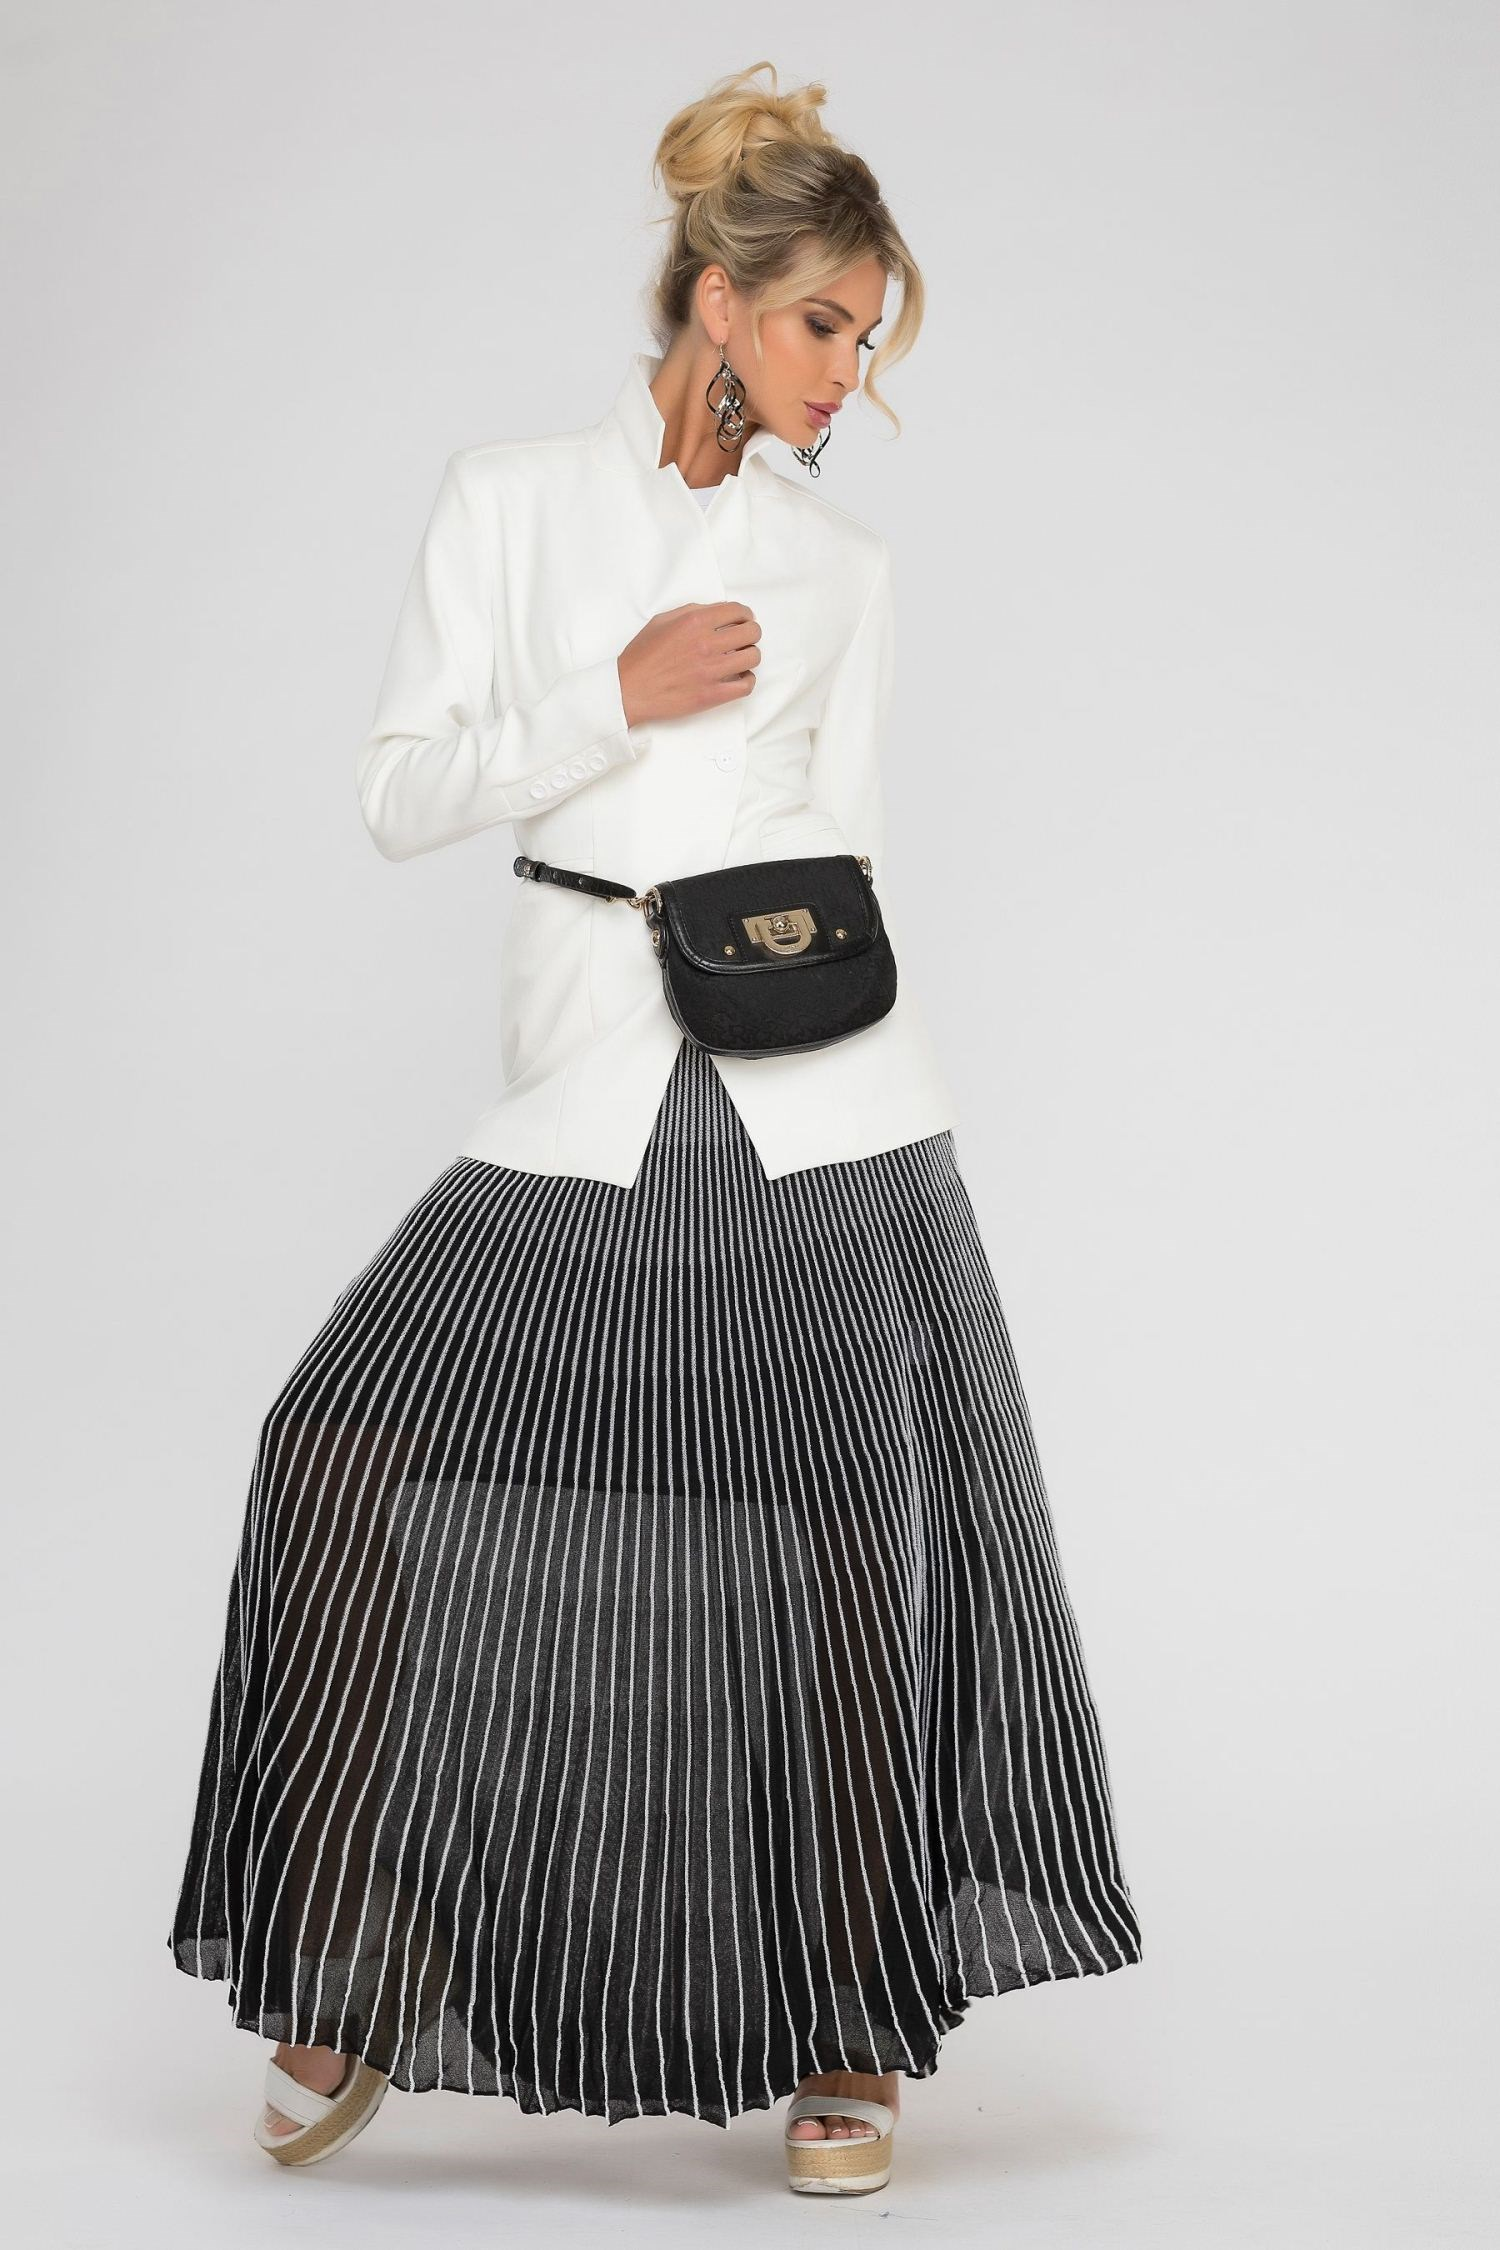 Long skirt pleated. dabuwawa two colors winter basic pleated skirt women long skirt solid office elegant black woolen skirt